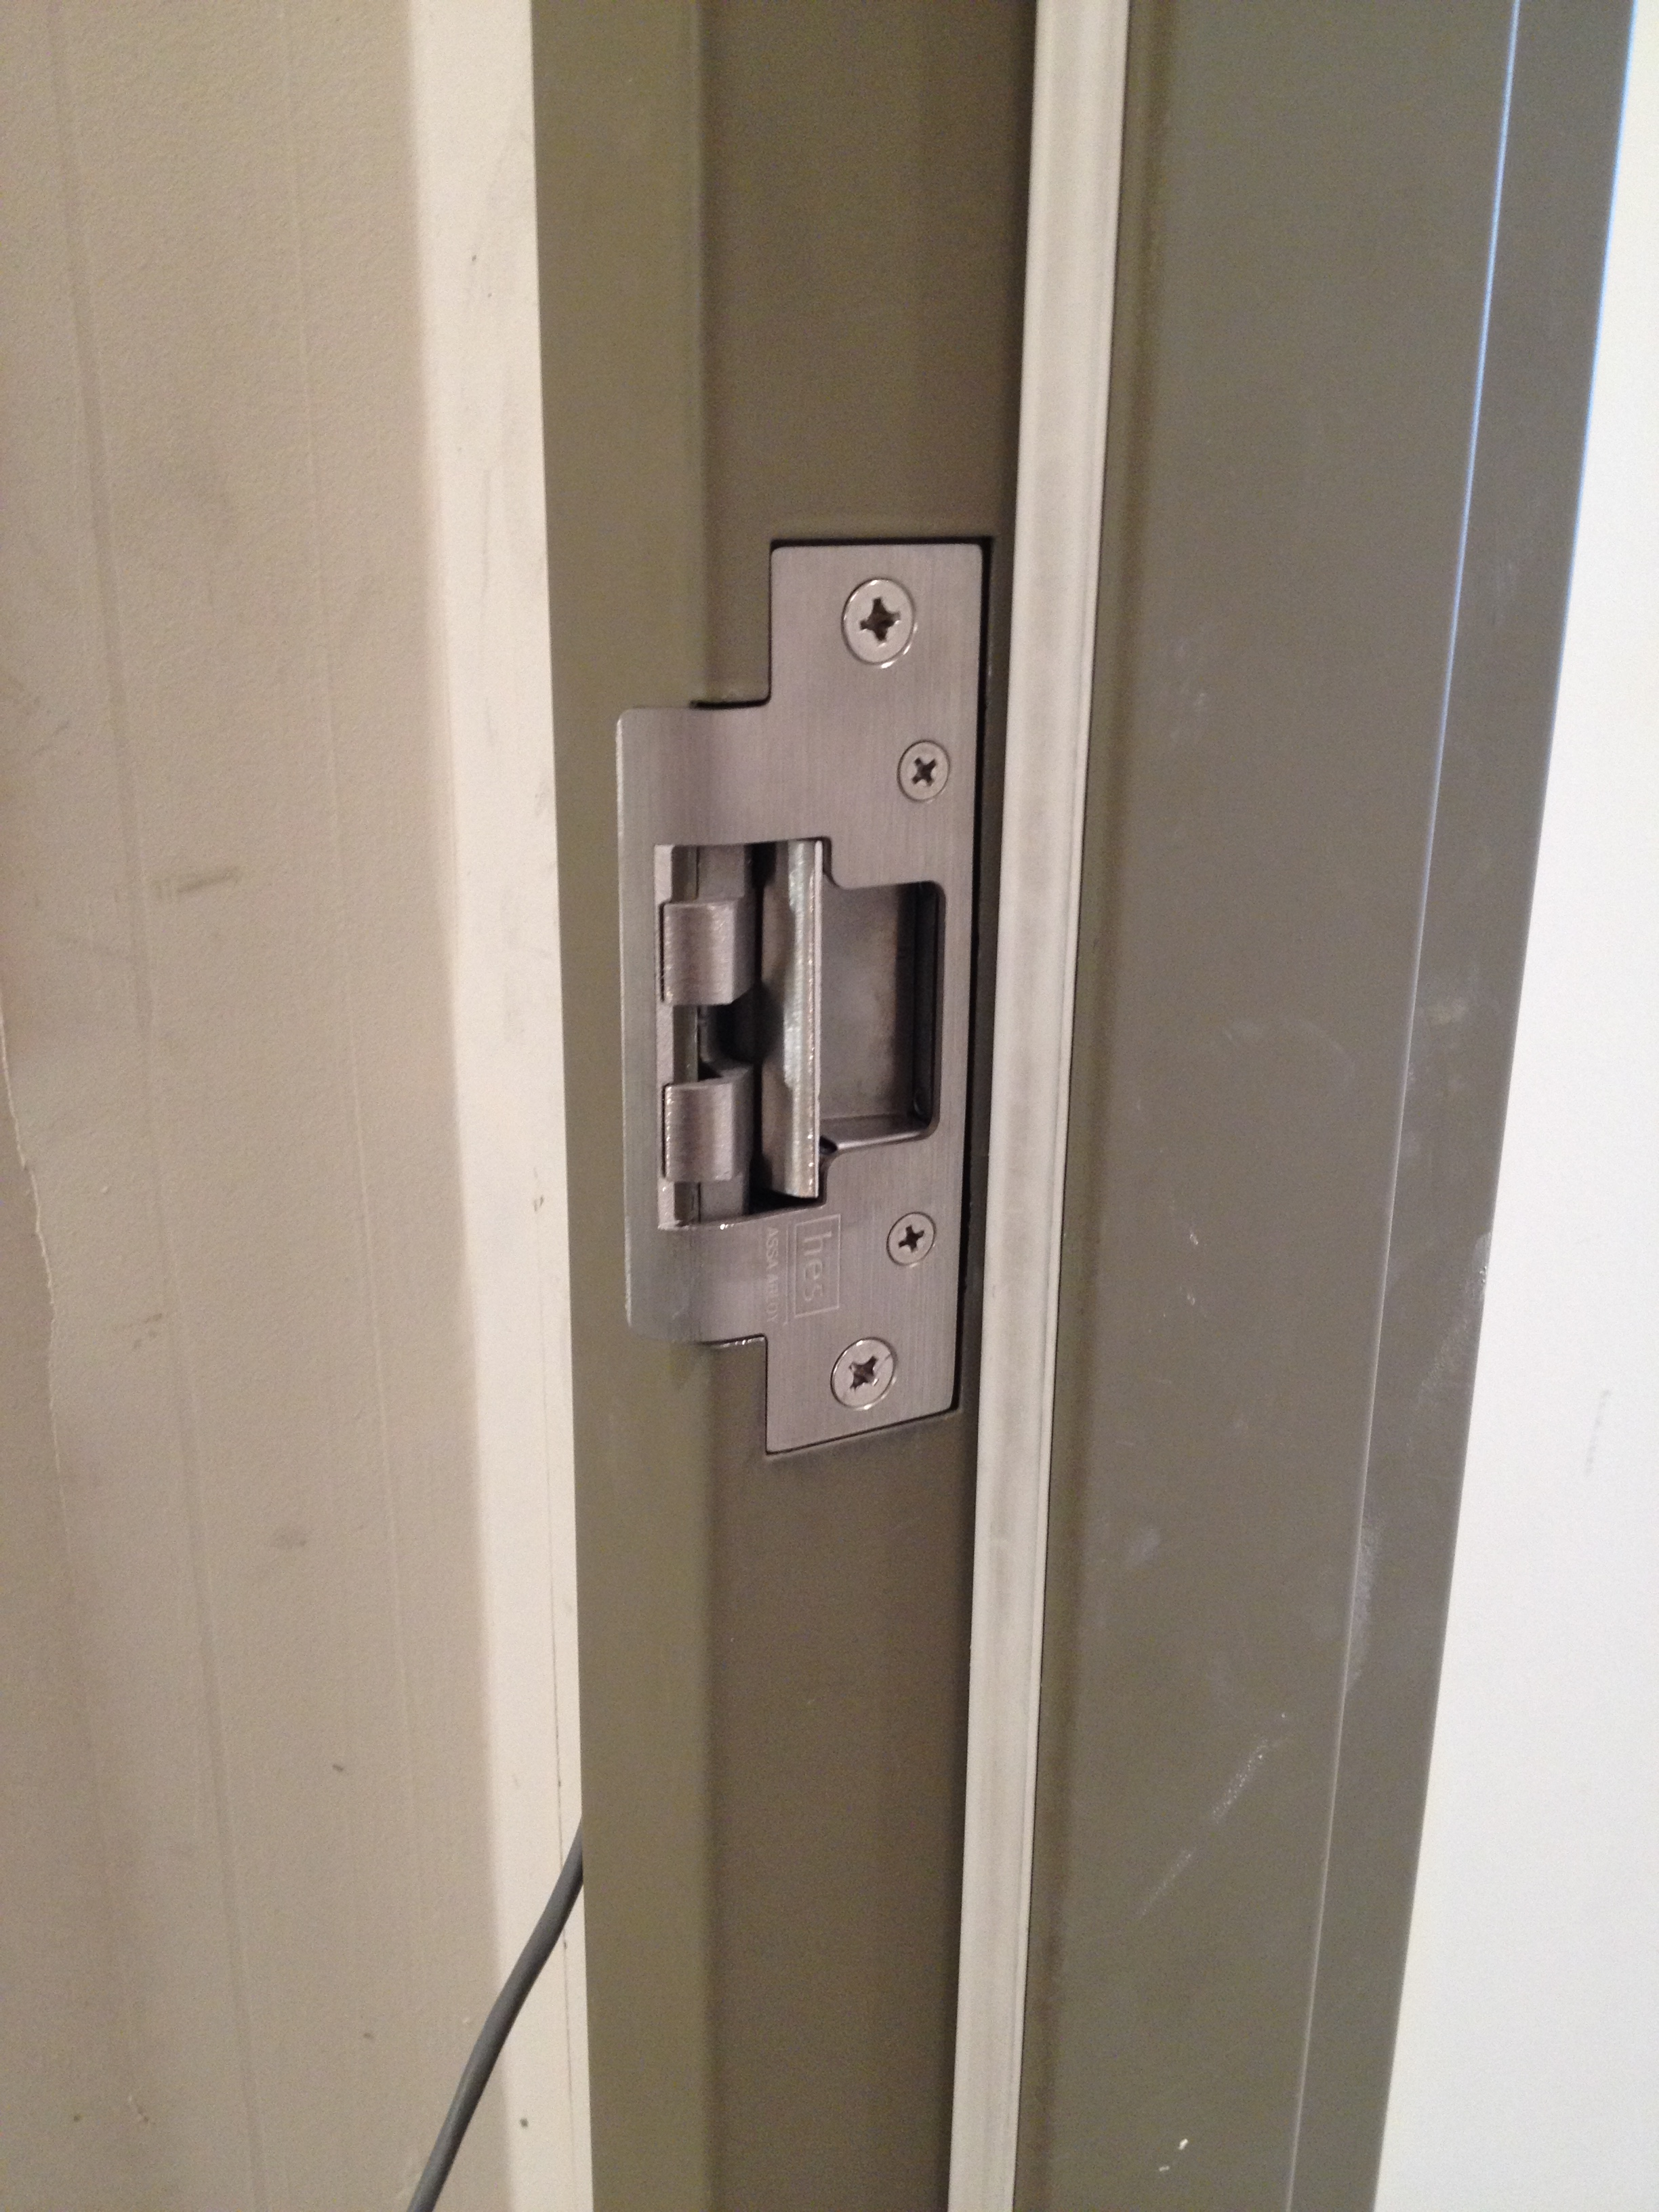 Electric Strike Installation Guide All Locks And Doors